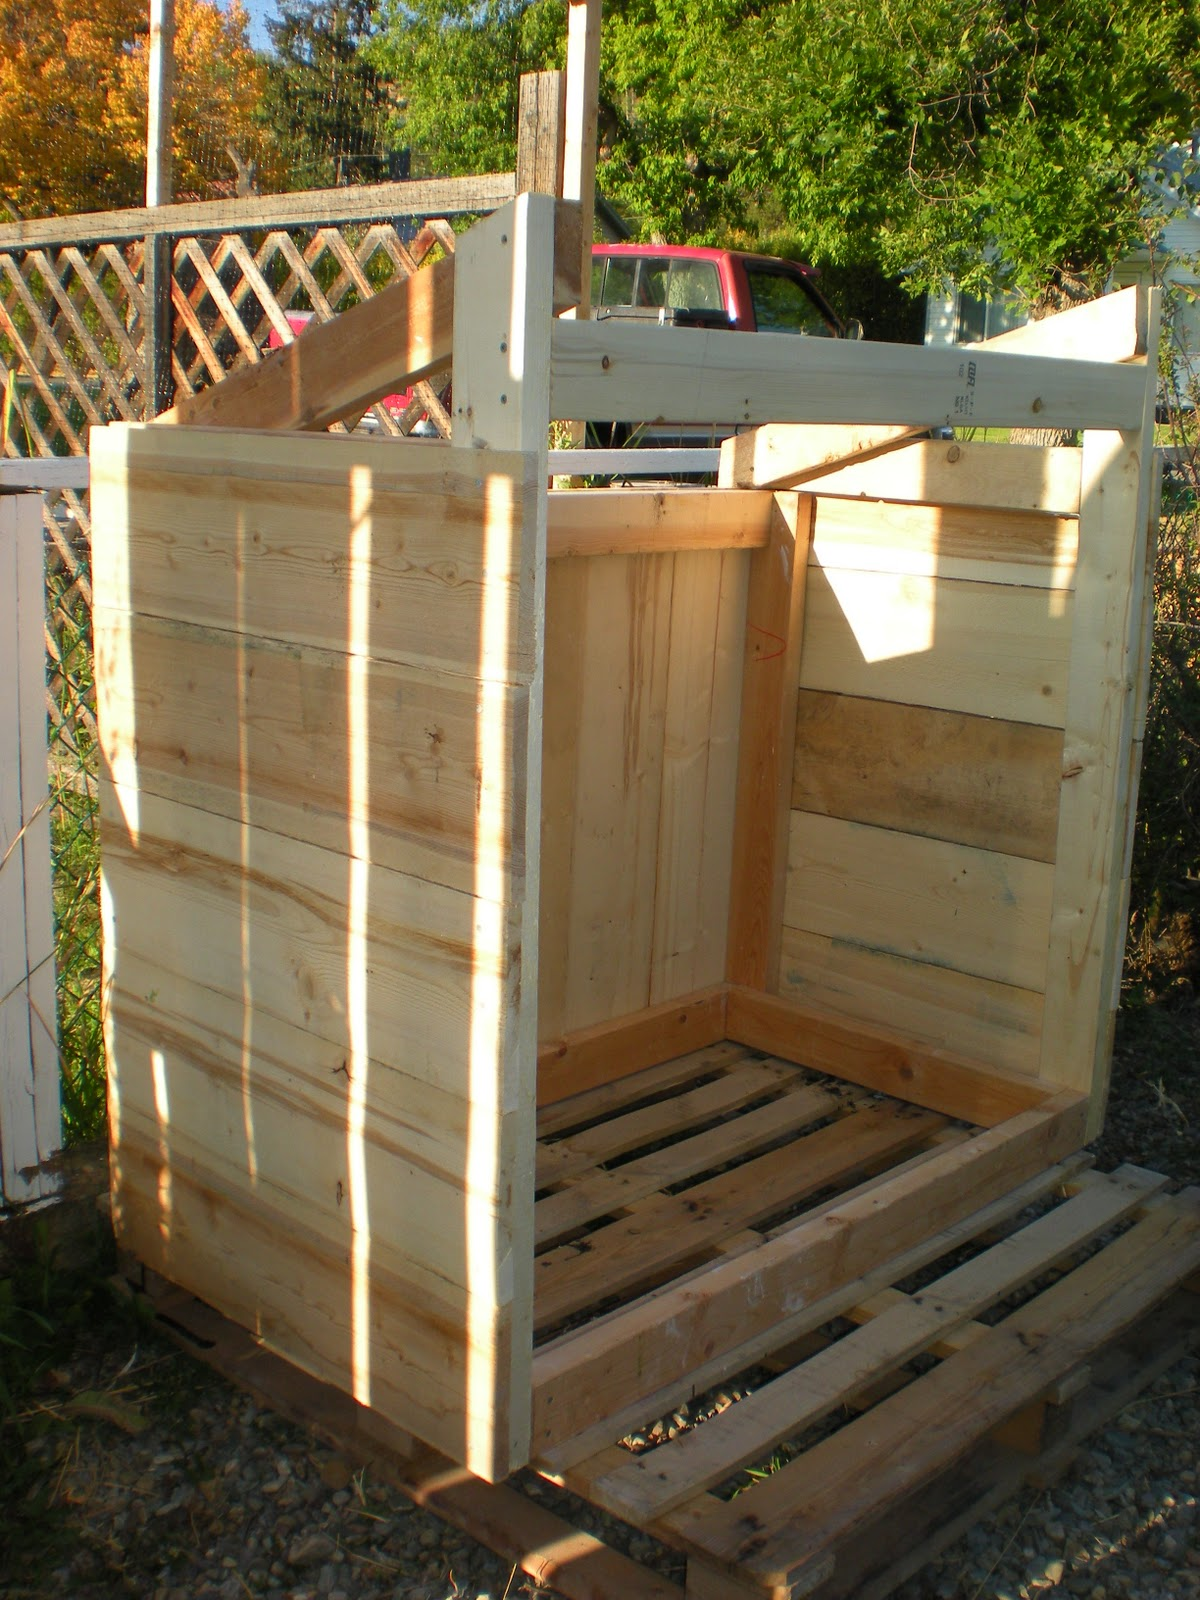 handyman plans storage diy tips the shed building bldshd outdoors family sheds